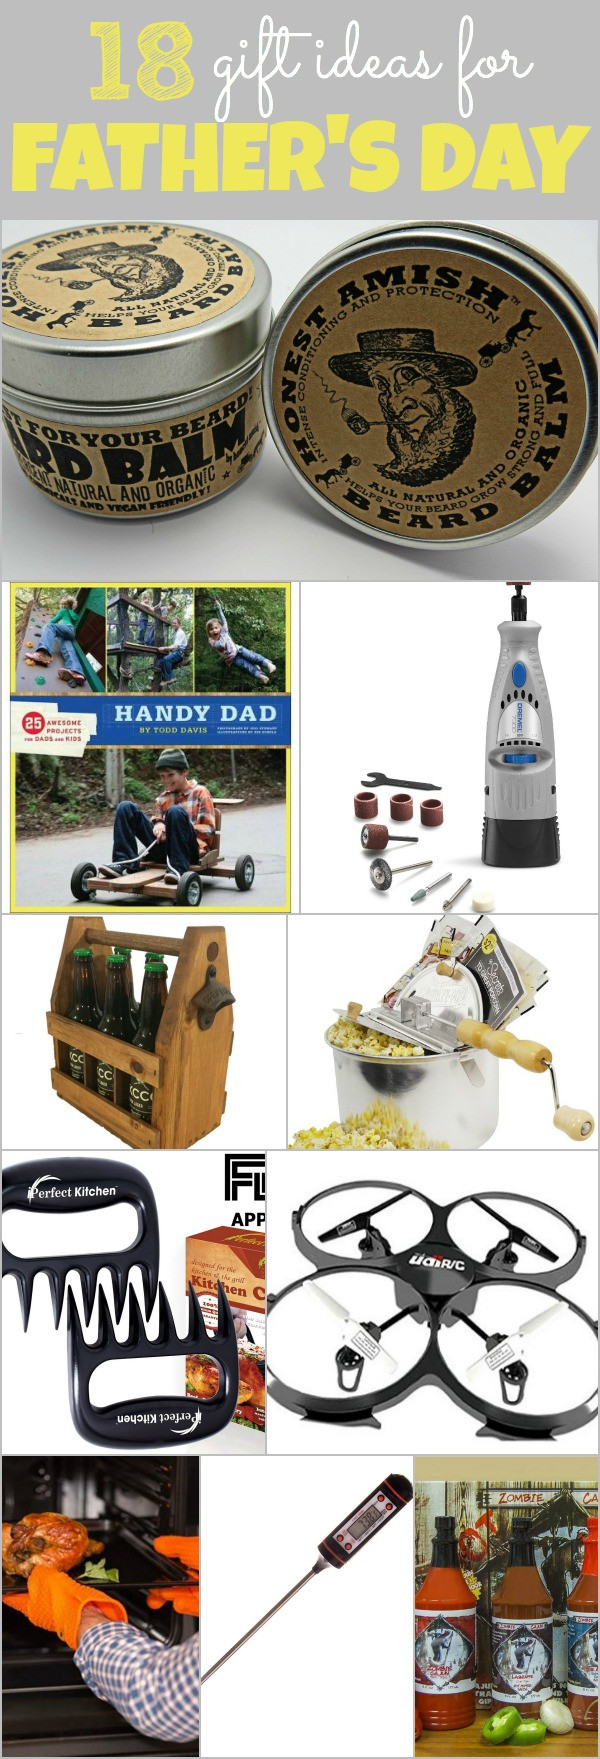 Best ideas about Father'S Day Gift Ideas For Husband . Save or Pin Father s Day Gift Ideas for Your Husband Home Stories A to Z Now.